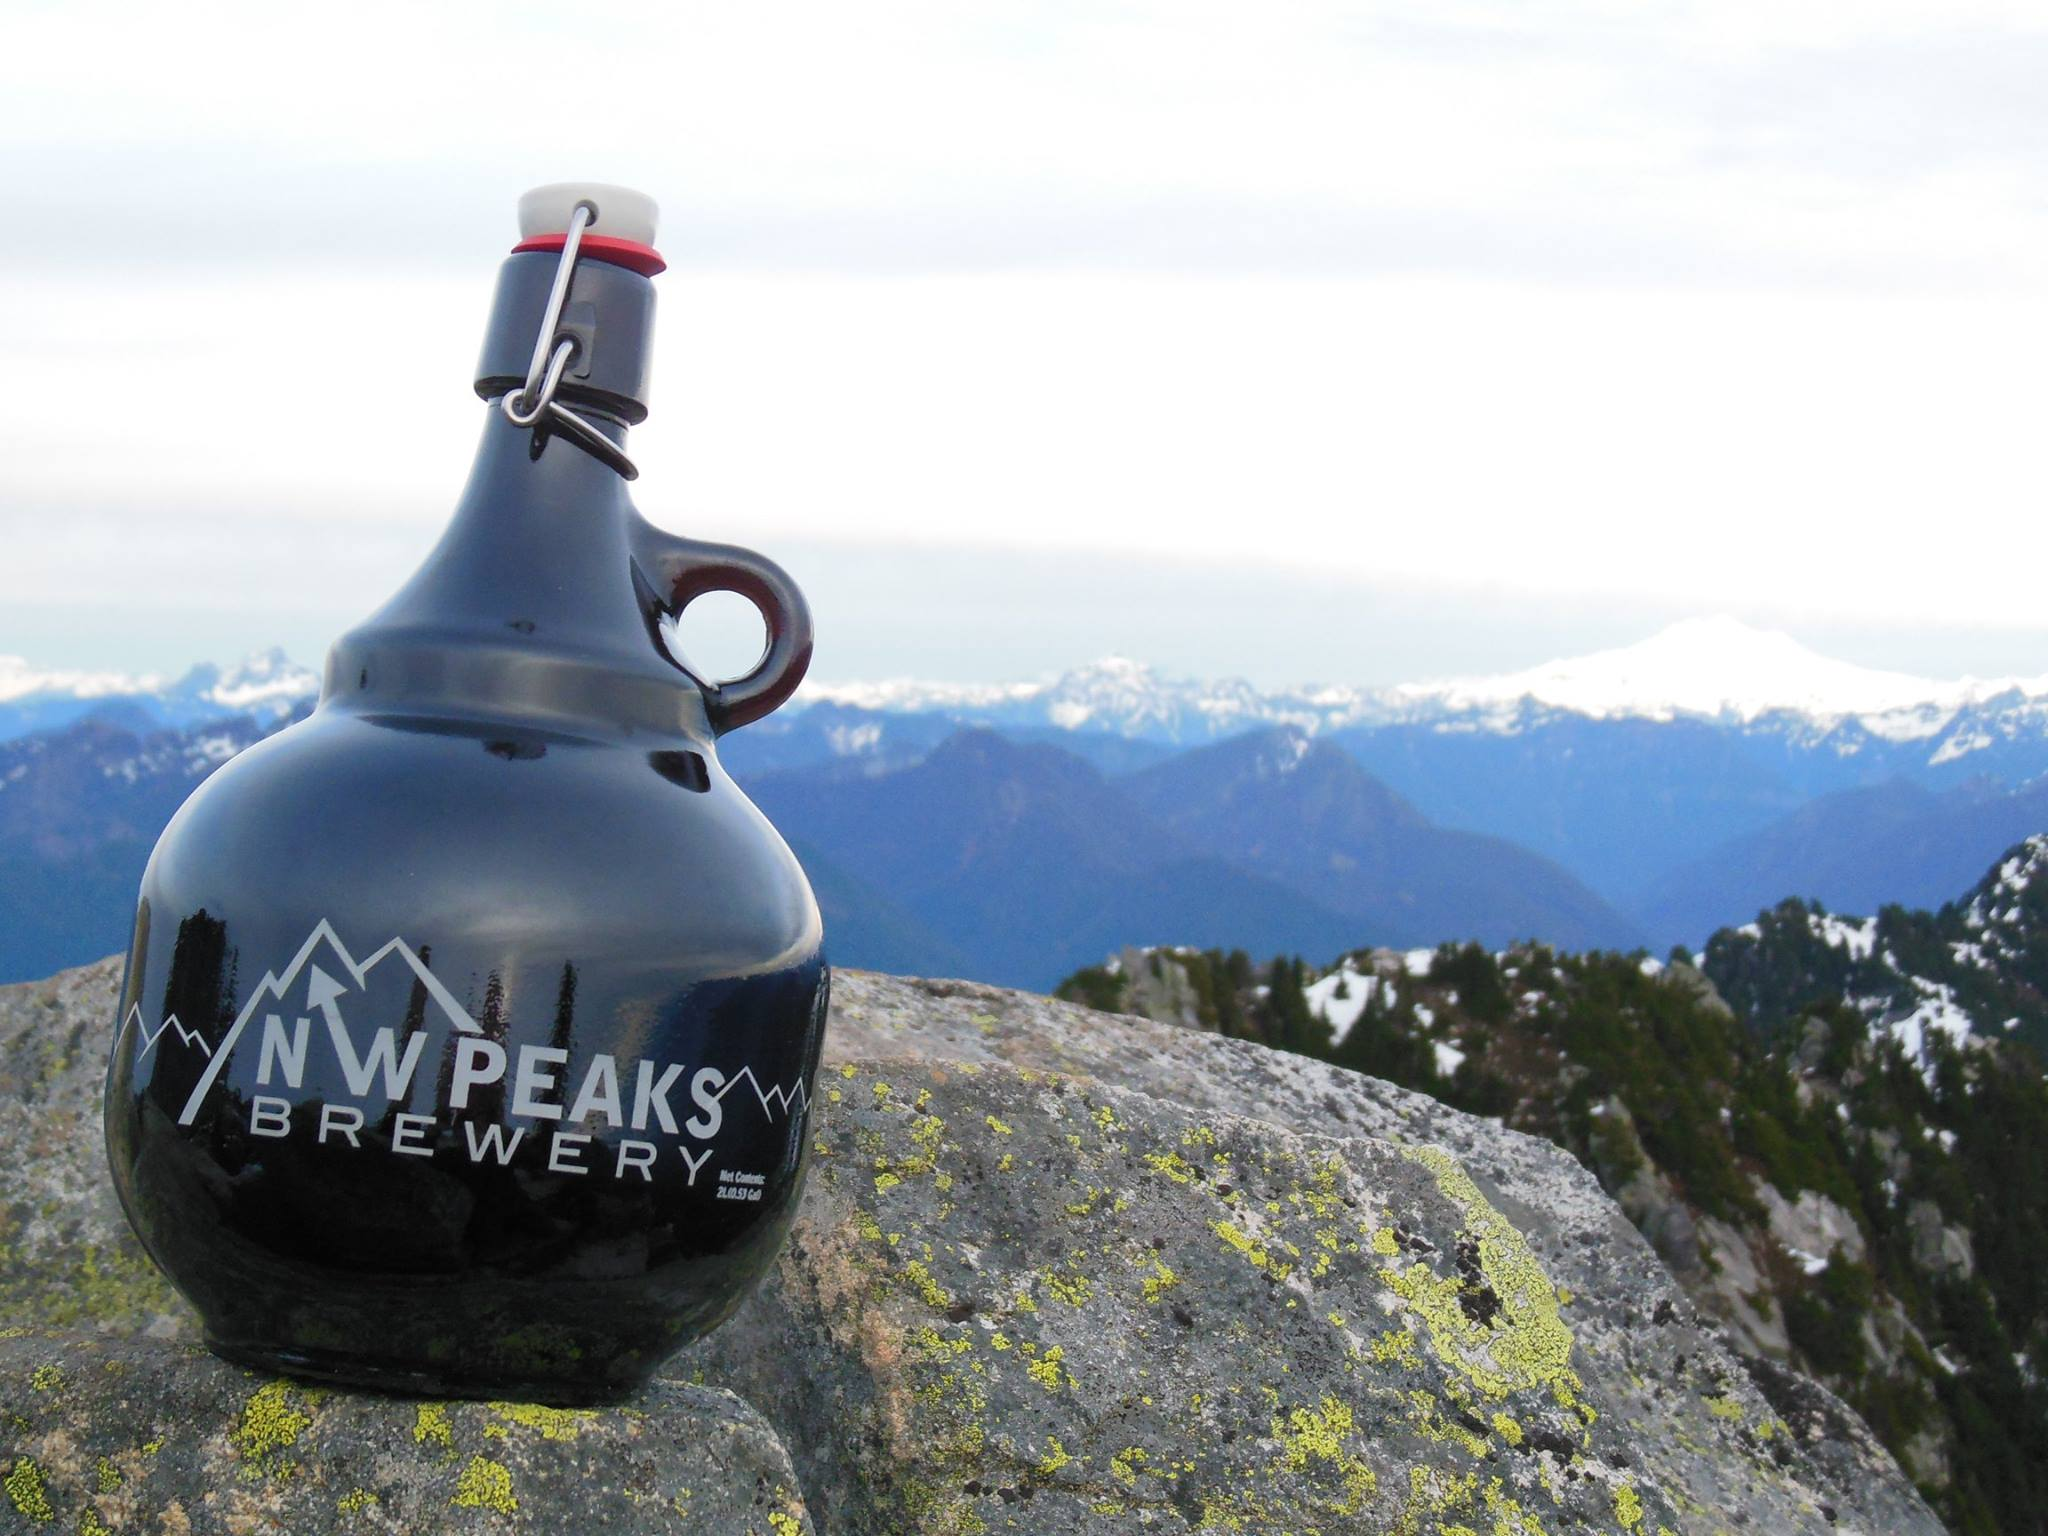 Growler-2-mountains-NW-Peaks.jpg